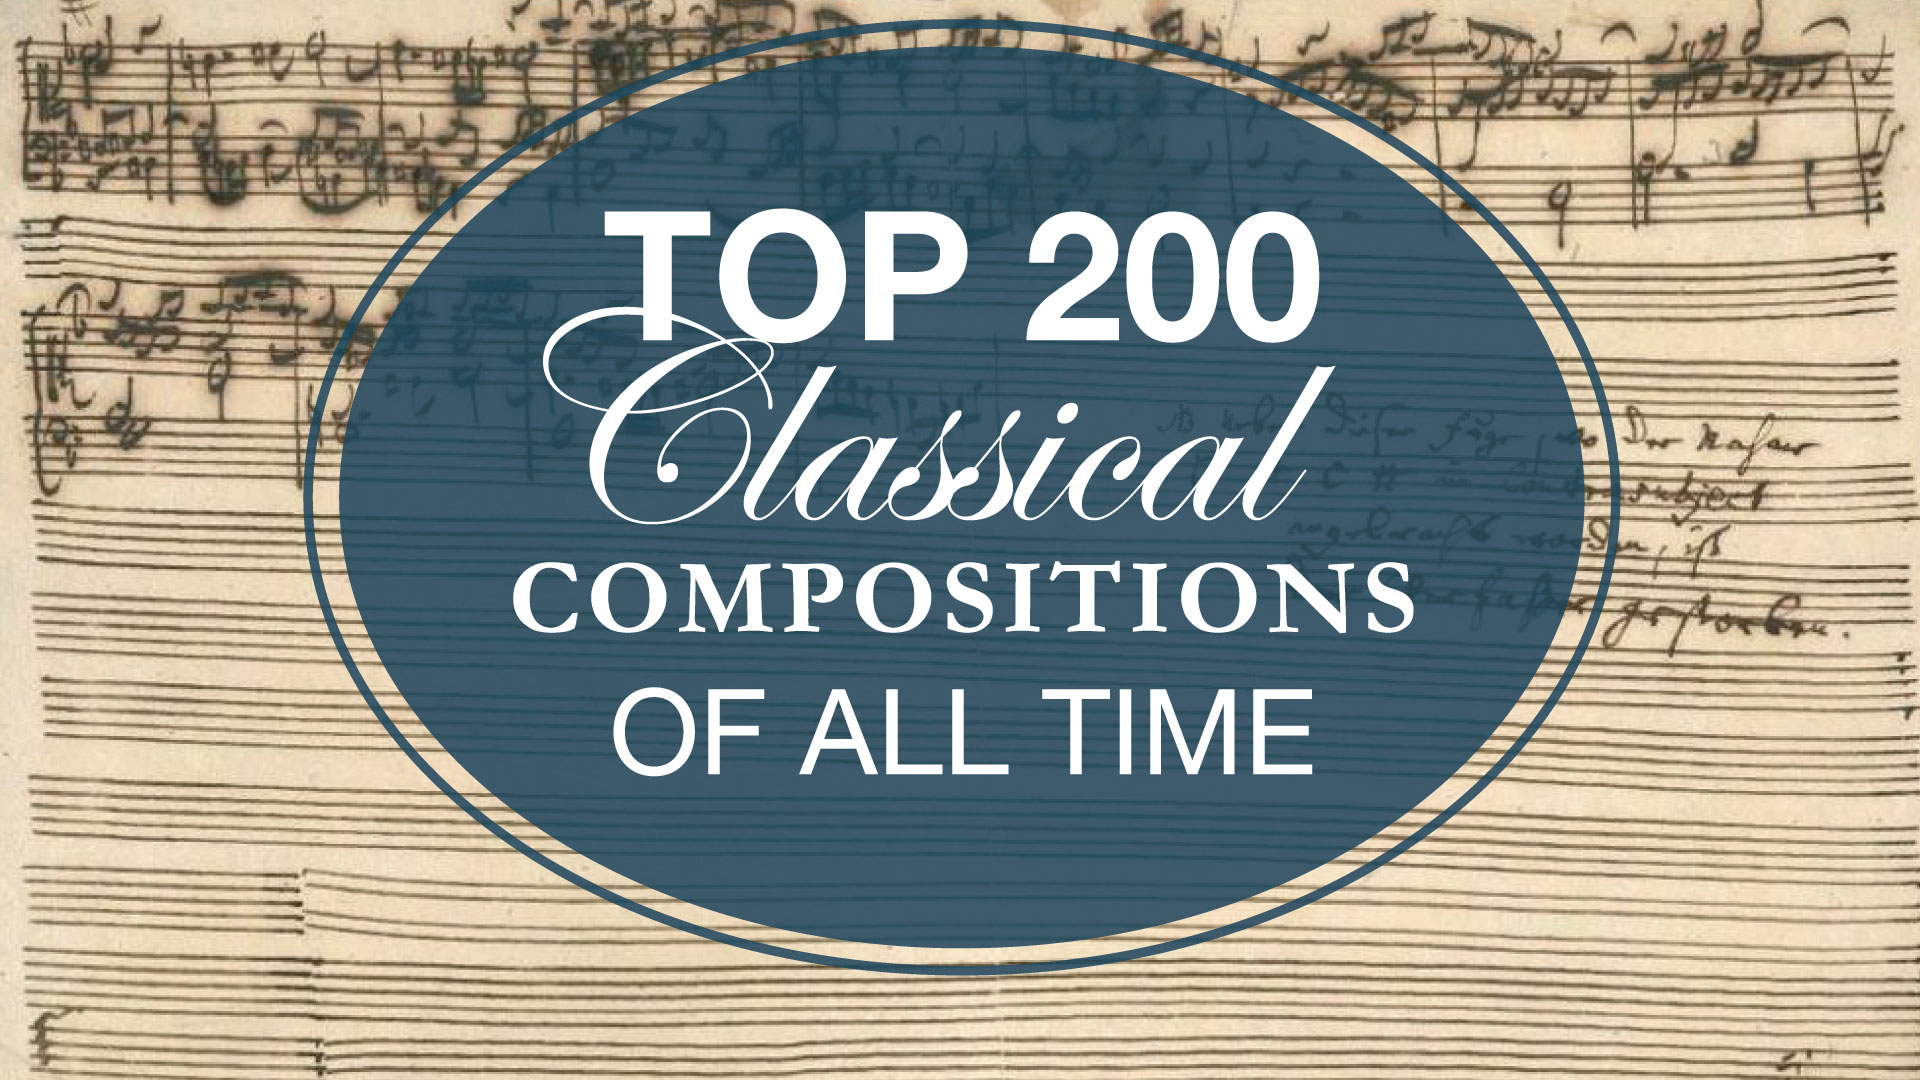 Top 200 Classical Compositions of All Time - type on the top of a handwritten composition